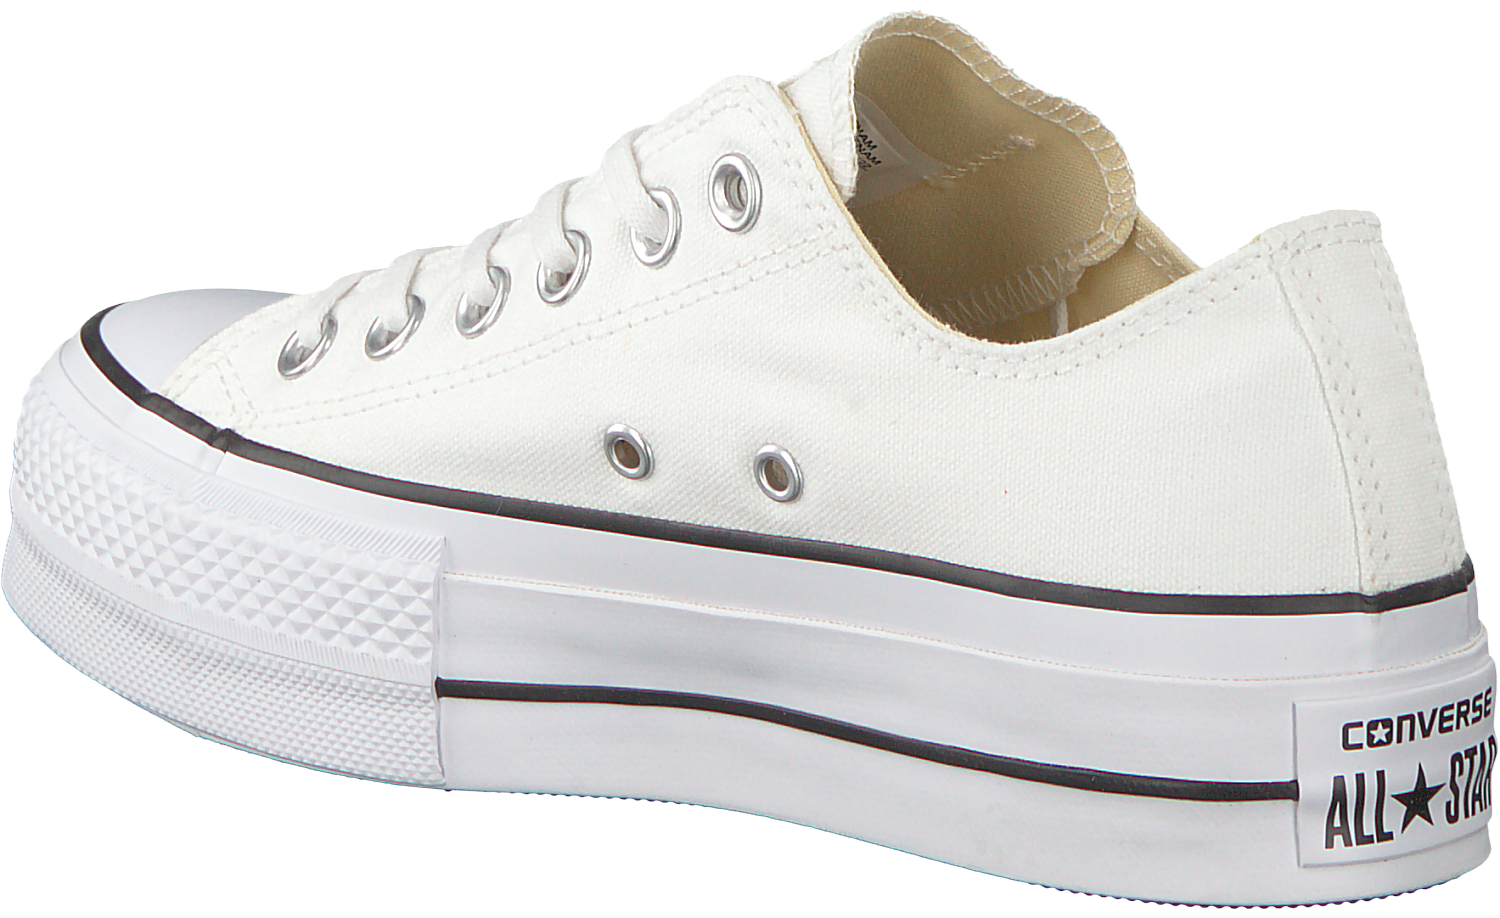 602ed4aee94 Witte CONVERSE Sneakers CHUCK TAYLOR ALL STAR LIFT. CONVERSE. Previous